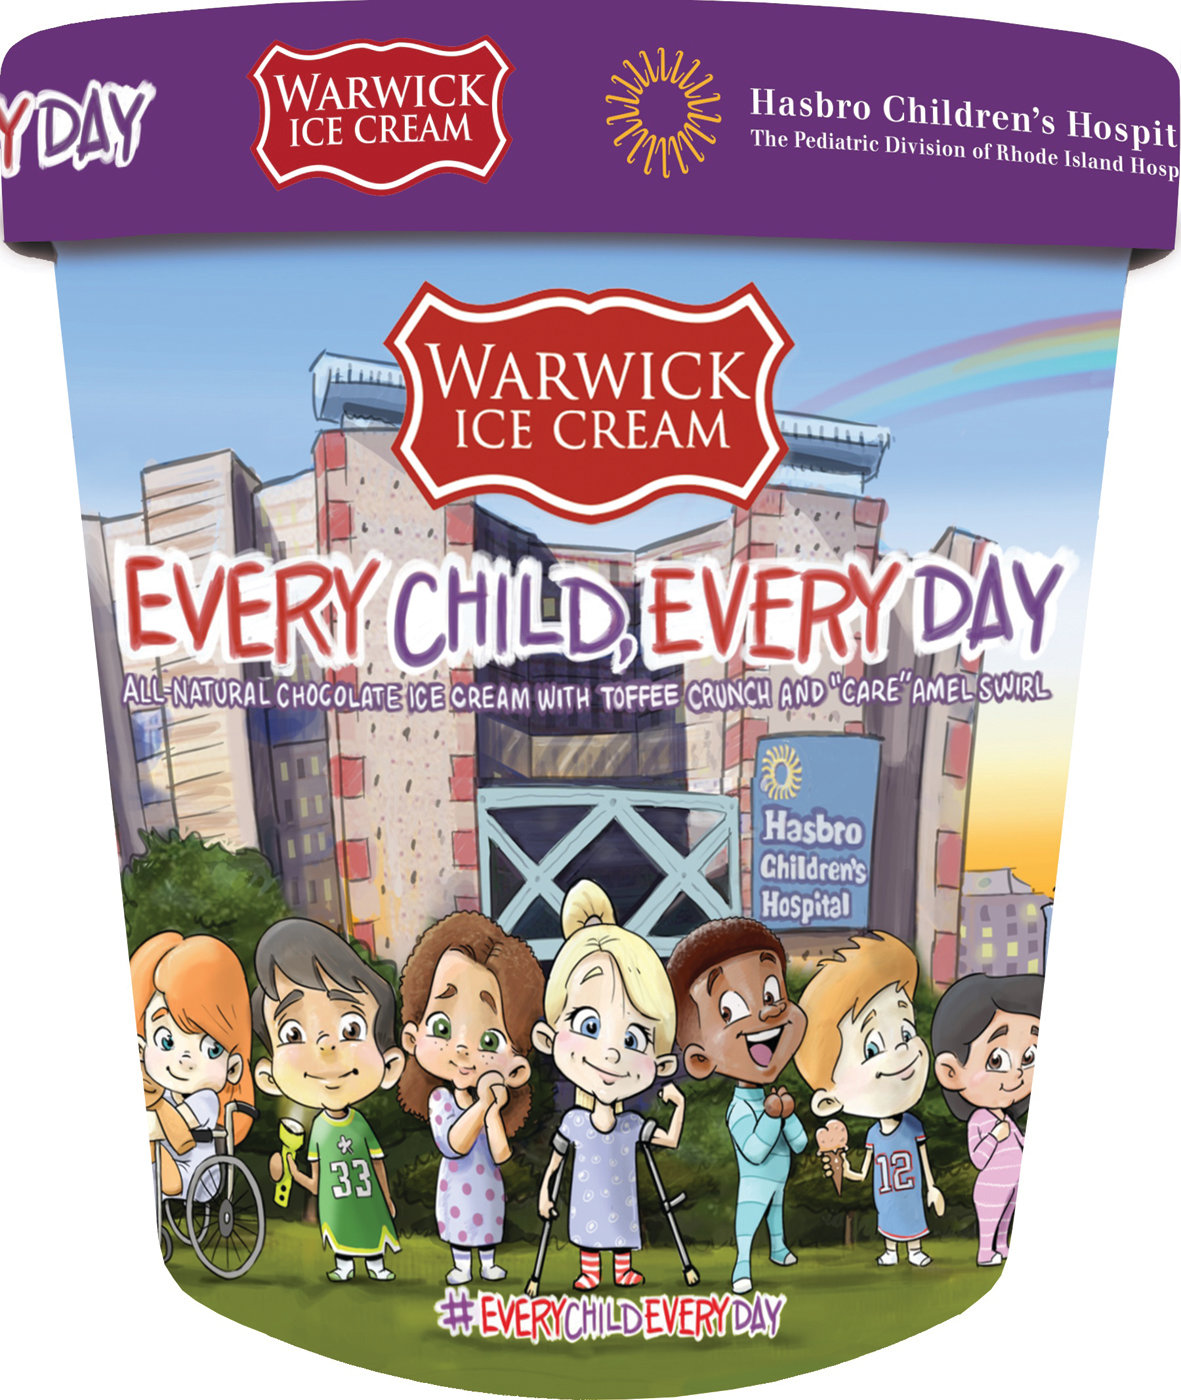 "I SCREAM FOR A GOOD CAUSE: The labeling for the new Warwick Ice Cream flavor, ""Every Child, Every Day,"" for which every pint sold a dollar, will be donated to Hasbro Children's Hospital's capital campaign."